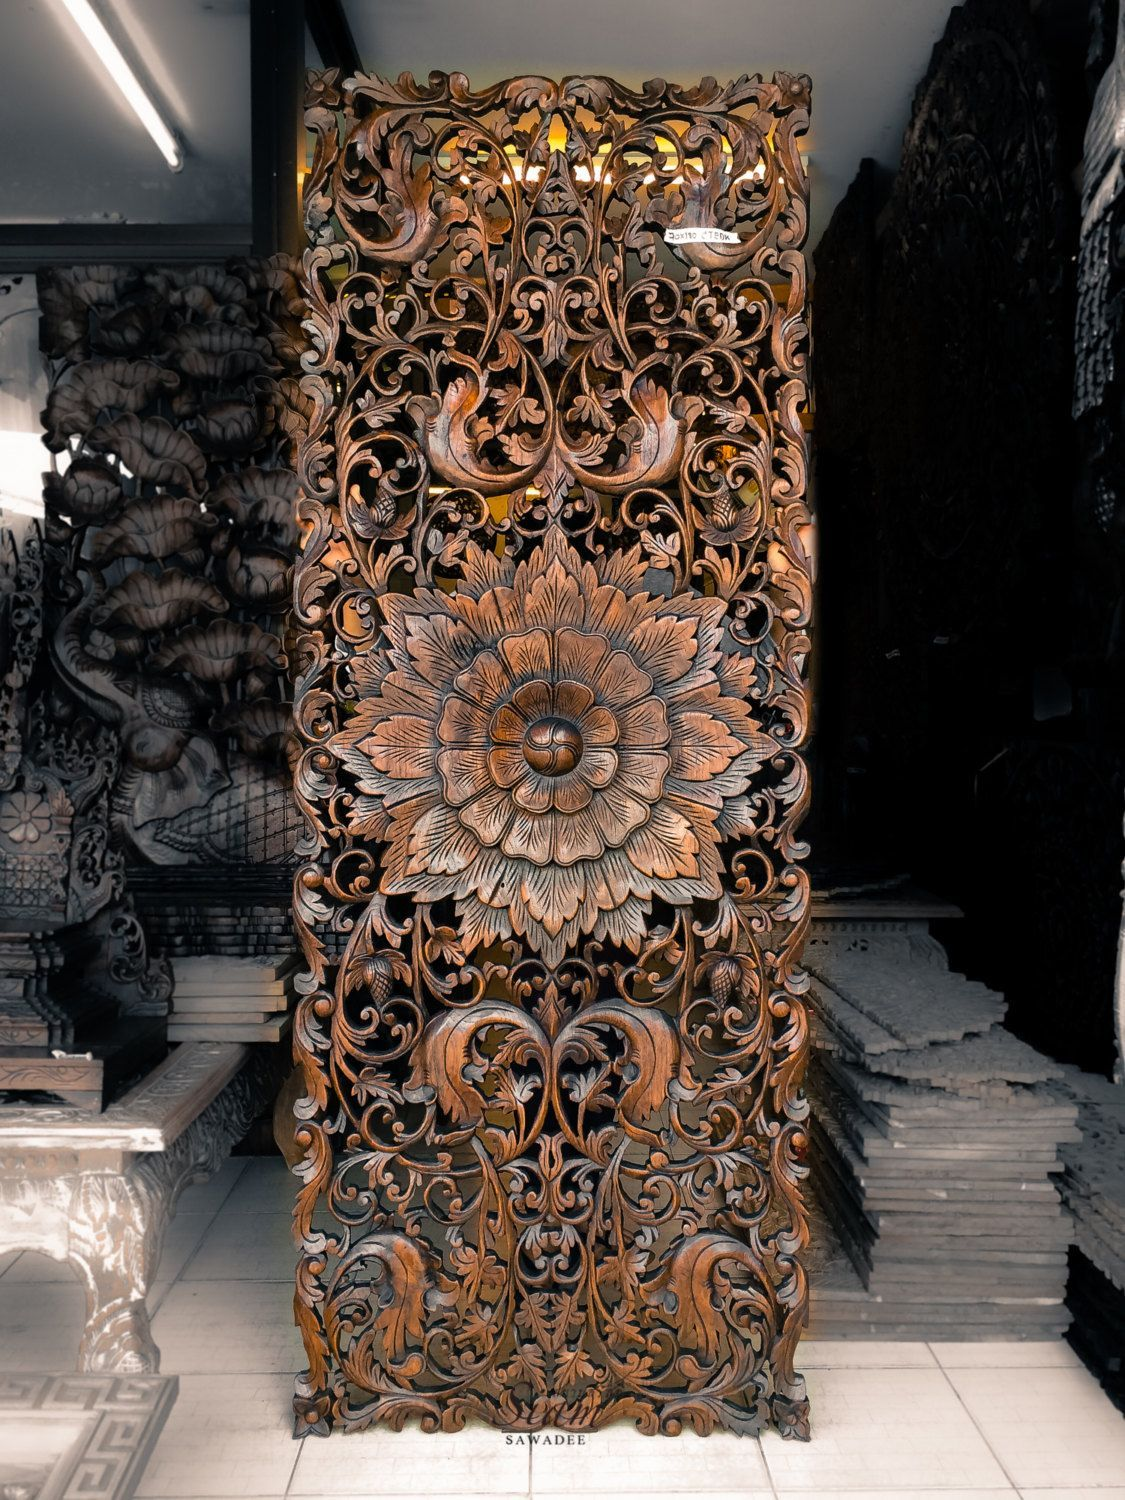 Teak wood carving wall sculpture panel perfect for bed headboard